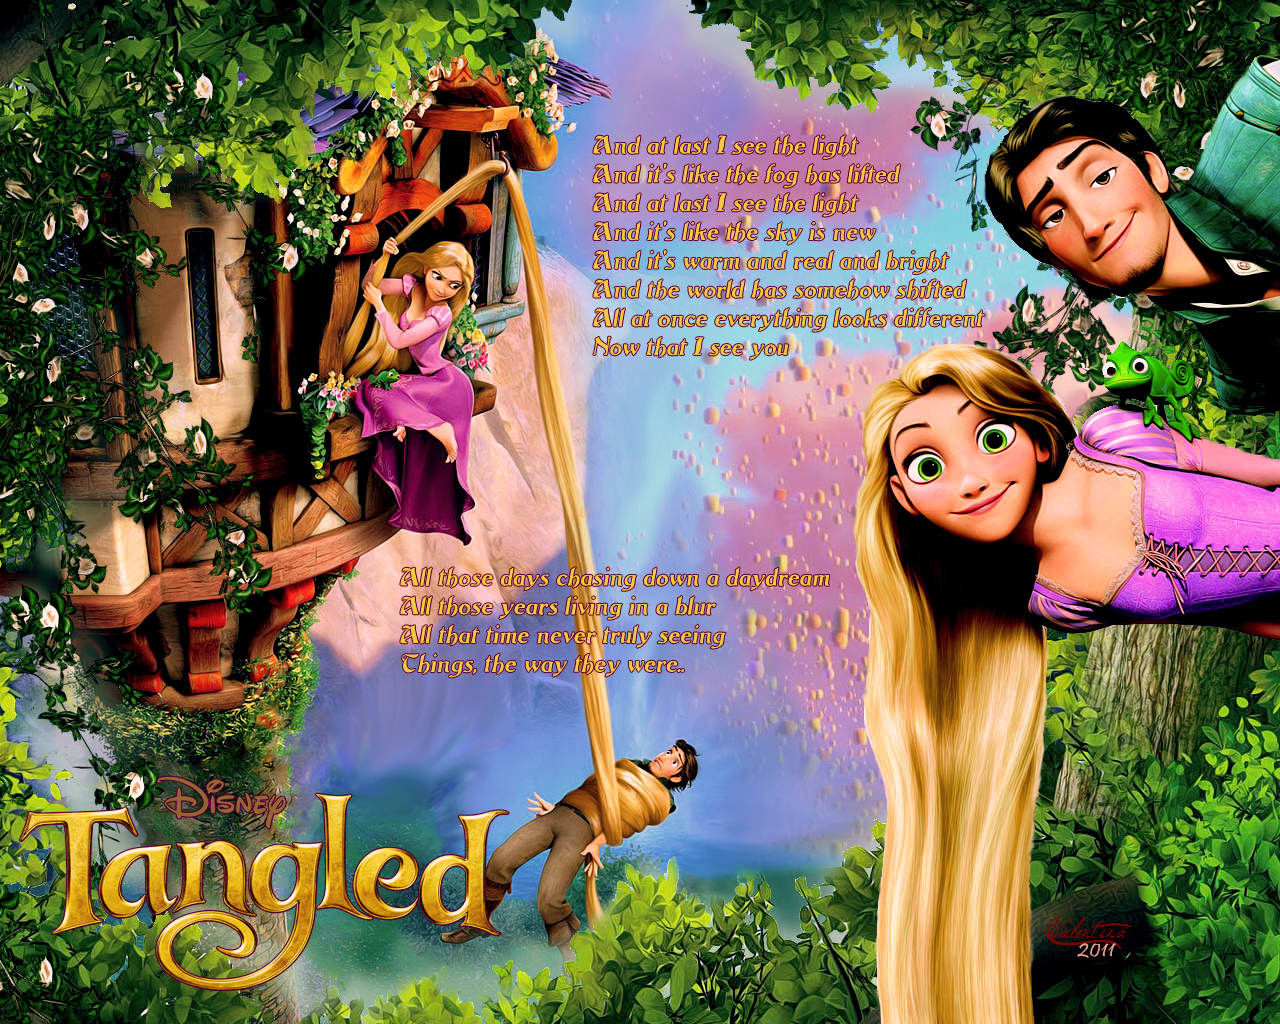 Flynn Rider of Disney Tangled images Tangled Wallpaper HD wallpaper ... for Tangled Wallpaper Rapunzel And Flynn  155sfw